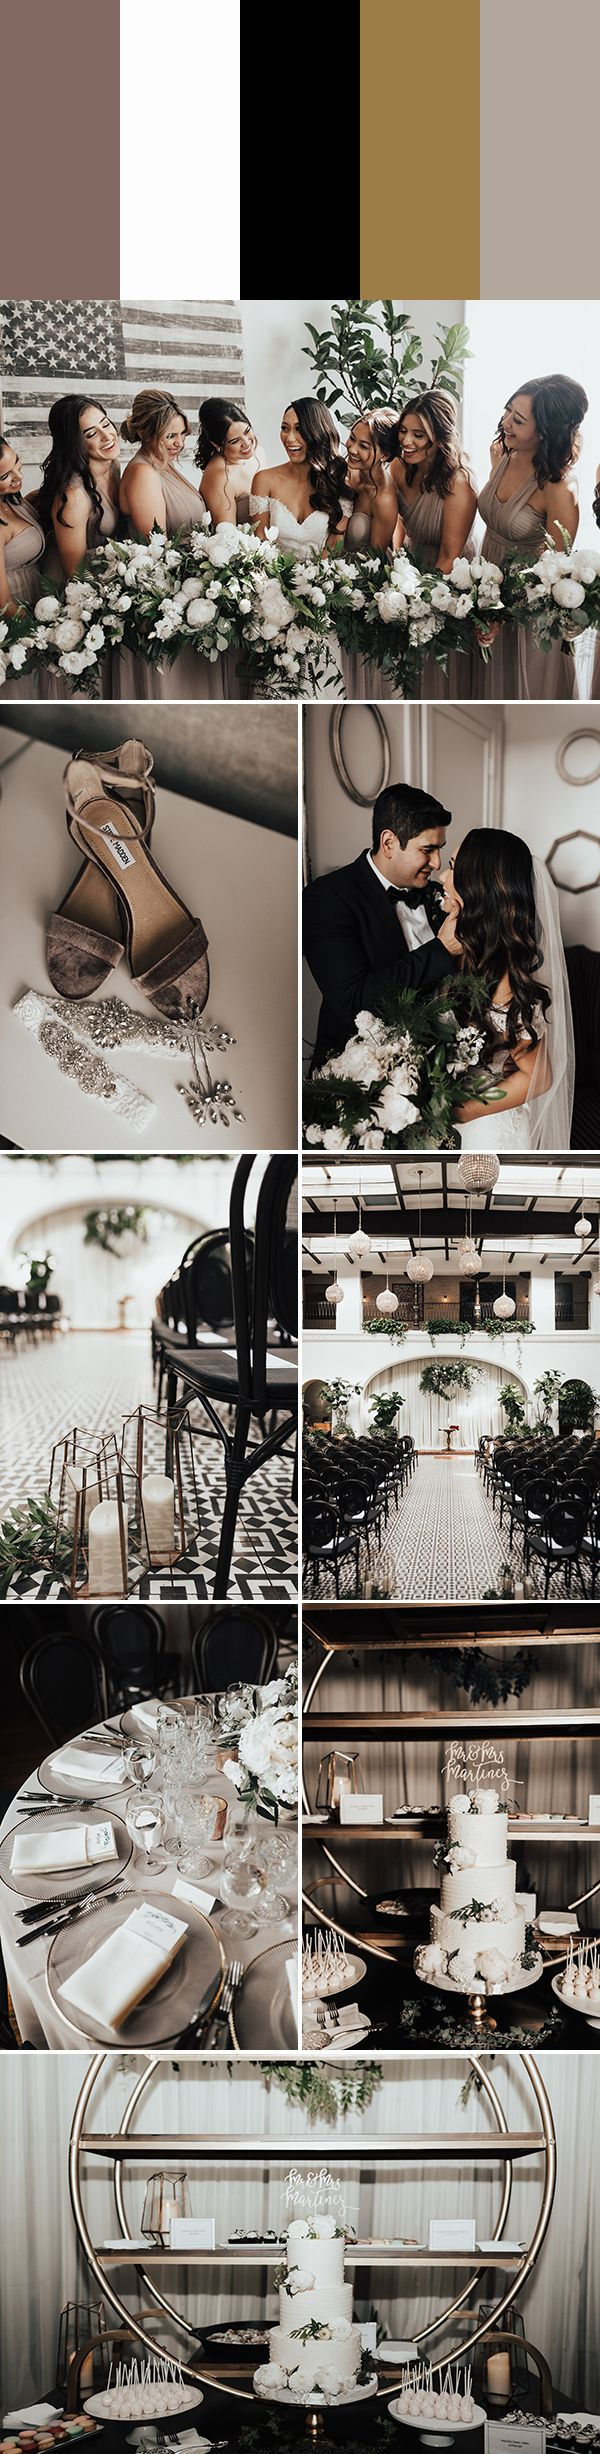 pewter + white + black + antique gold + silver | Images by In Frames Photography